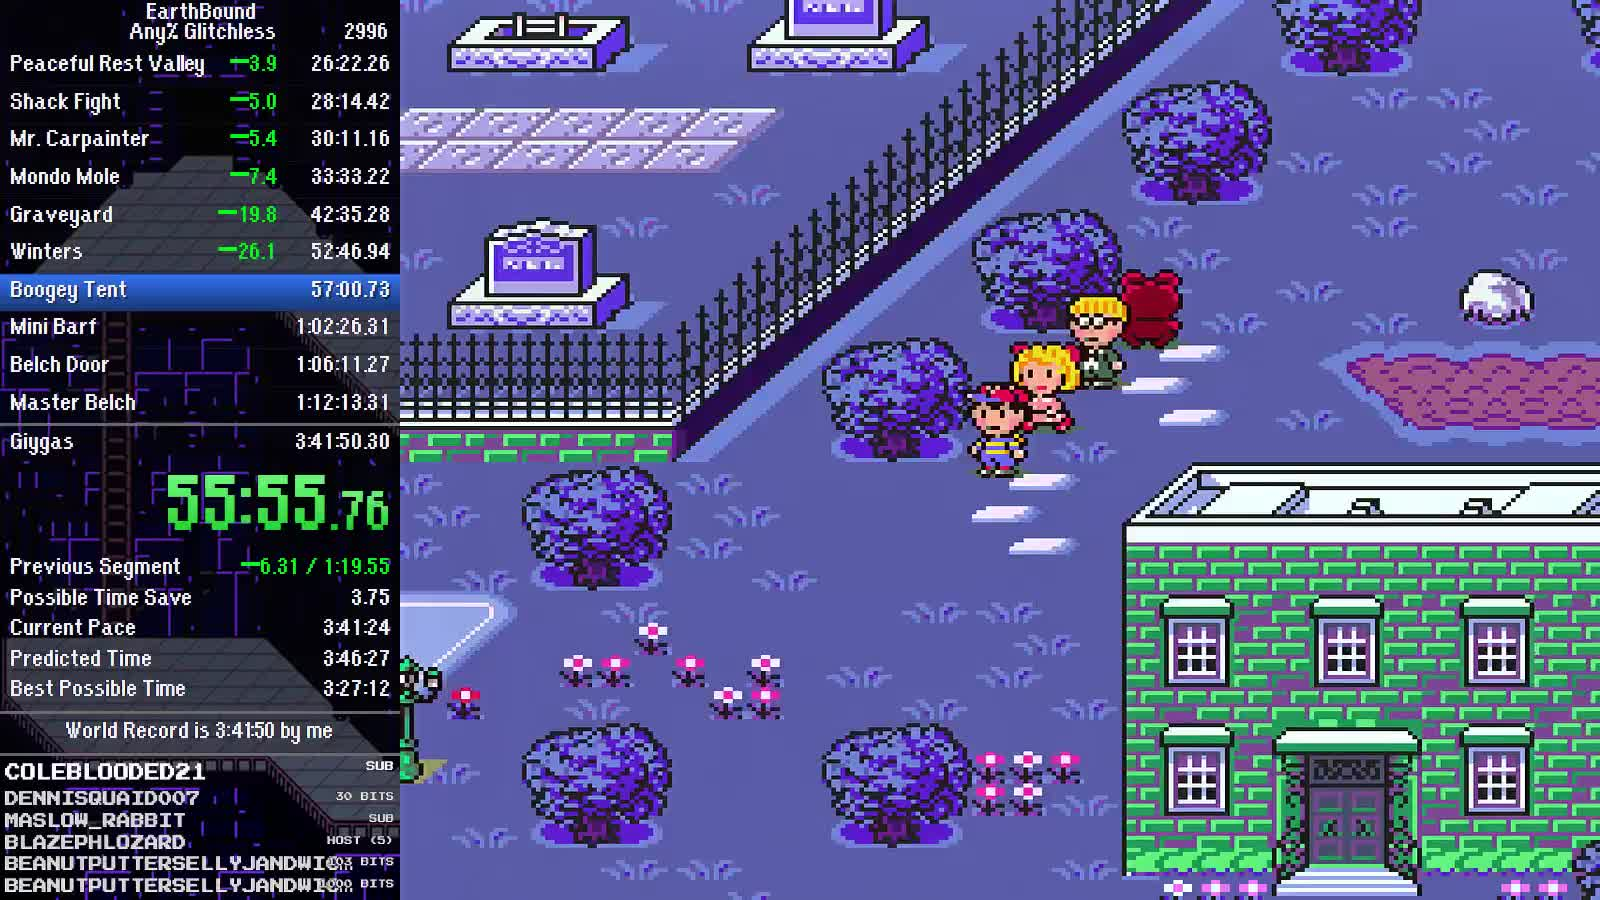 ceriam - EarthBound Any% Glitchless Speedrun WR Attempts